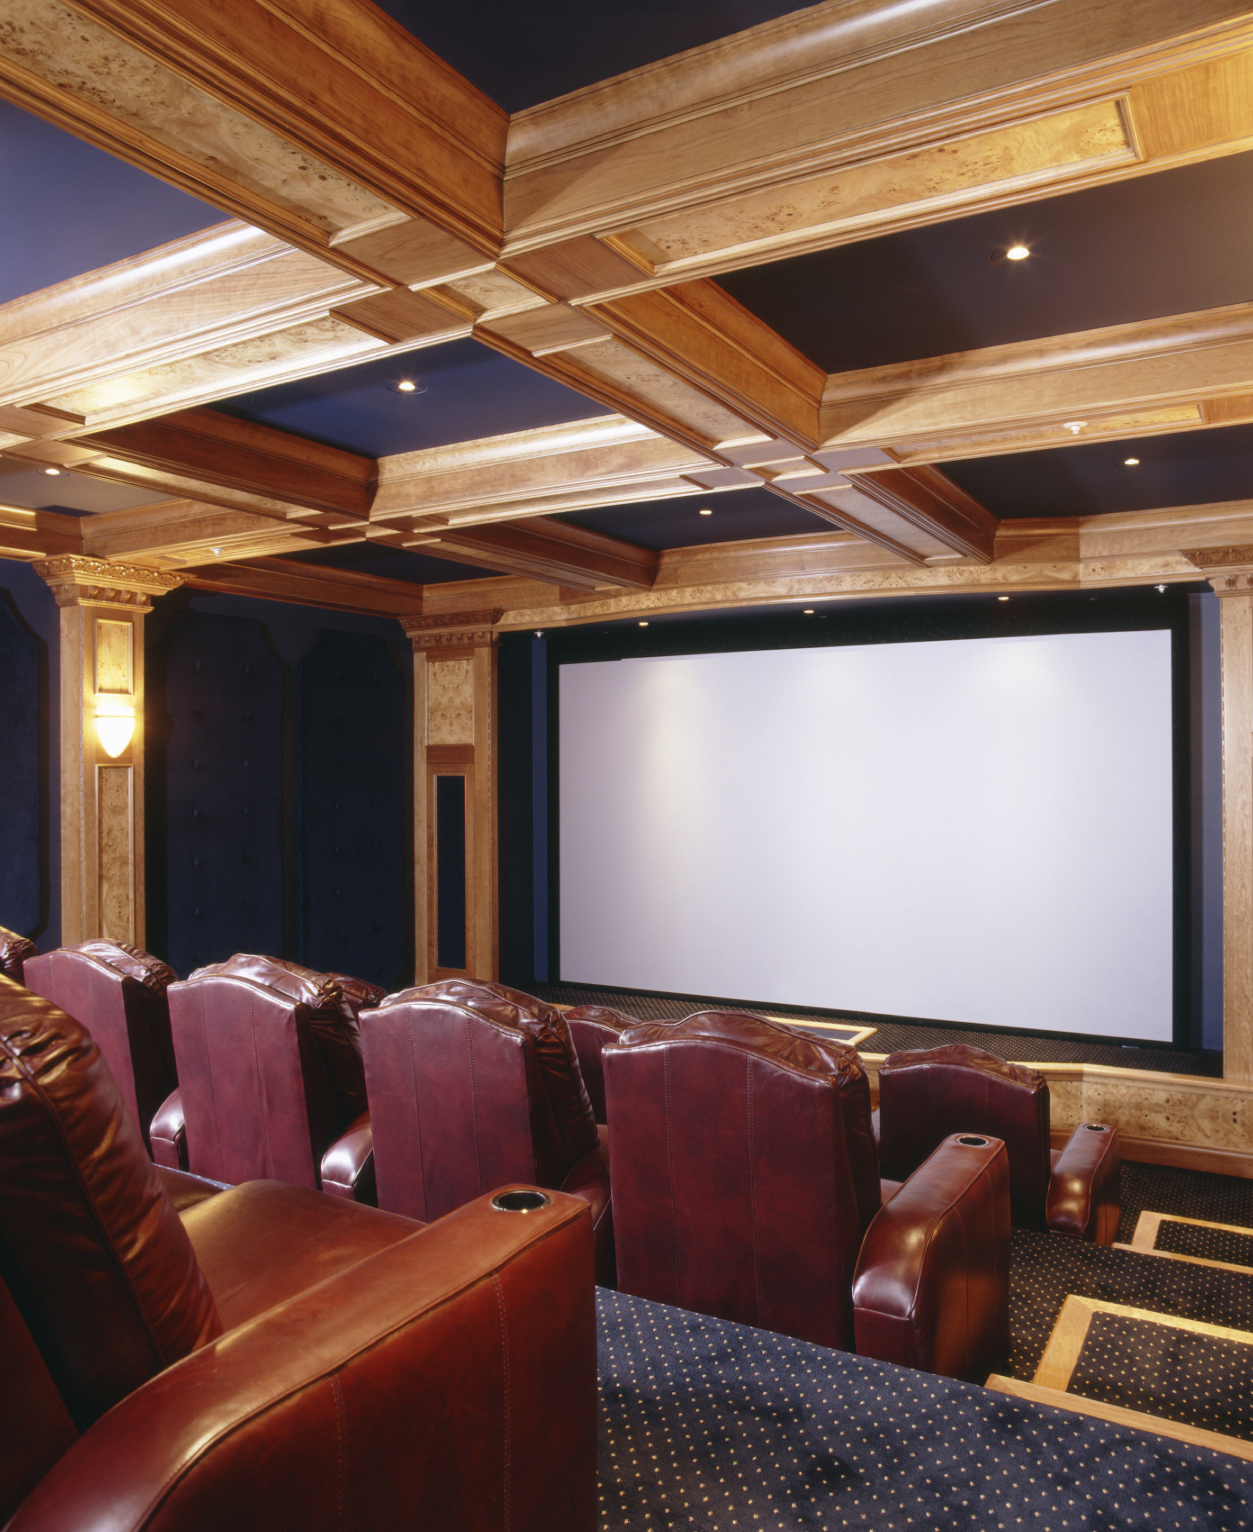 Home Theater Design And Ideas: 32 Luxury Home Media Room Design Ideas (Incredible Pictures